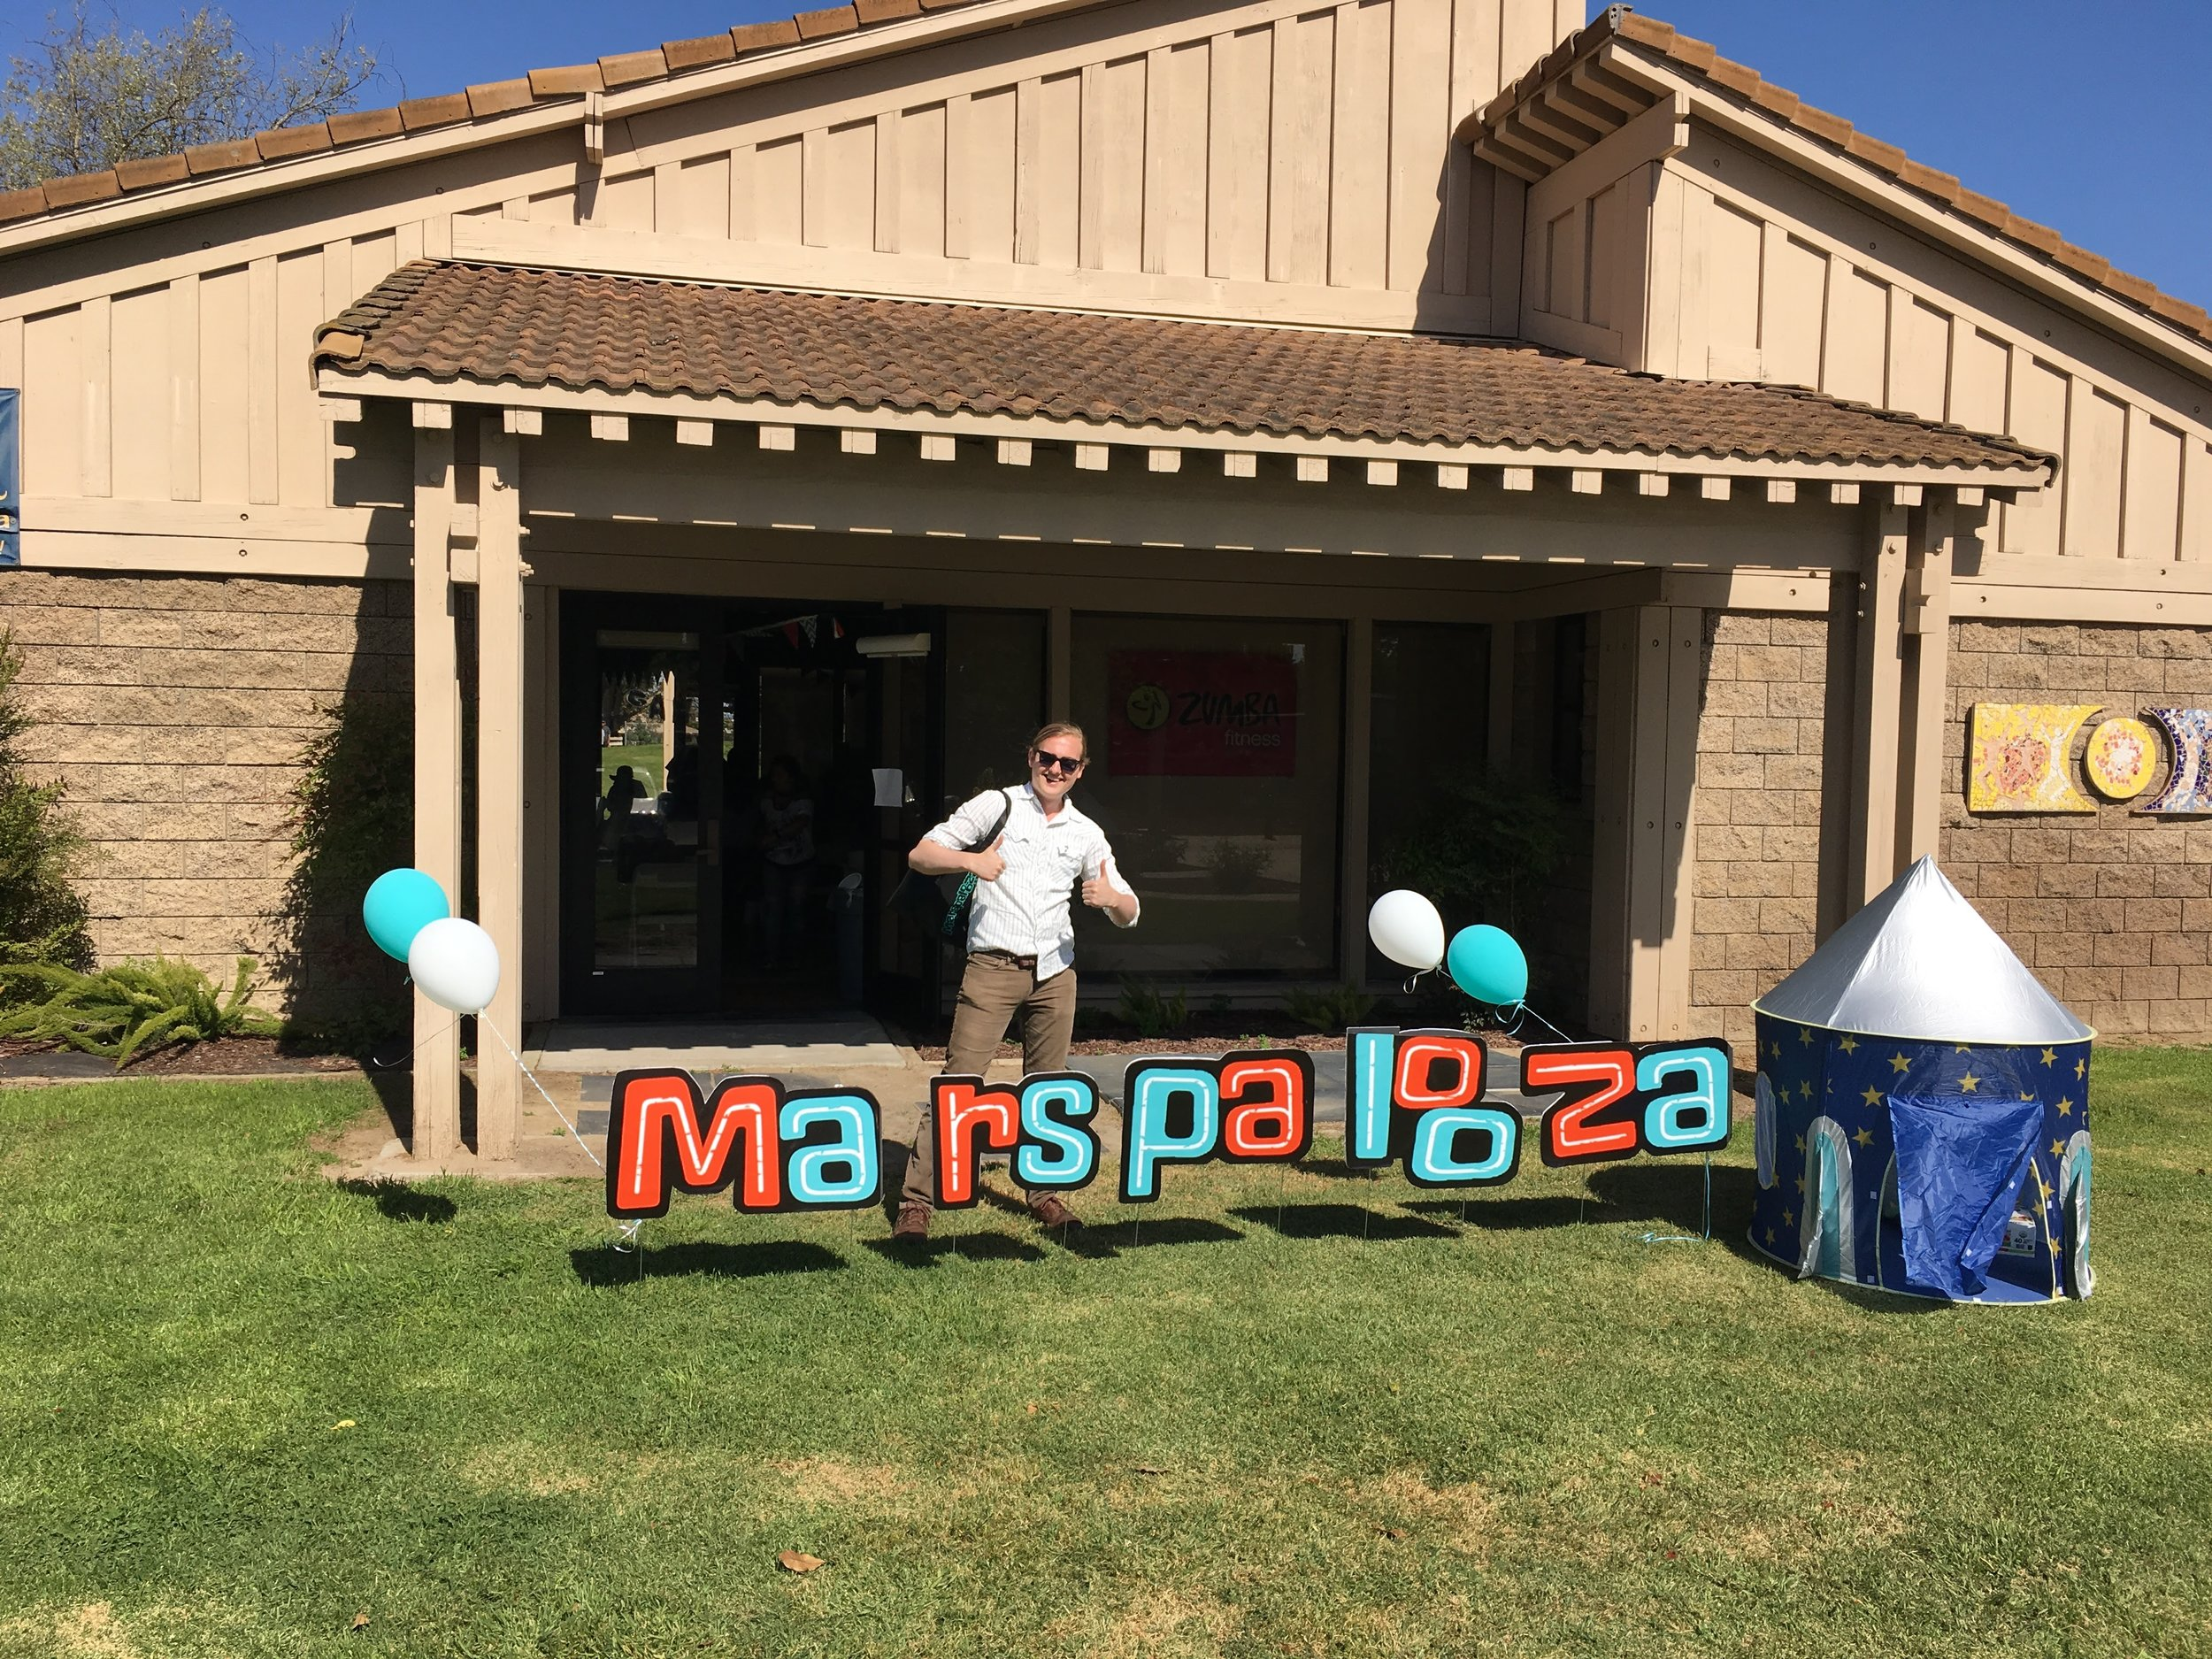 we were the headlining act (...the only act) at an awesome music festival themed kids party!